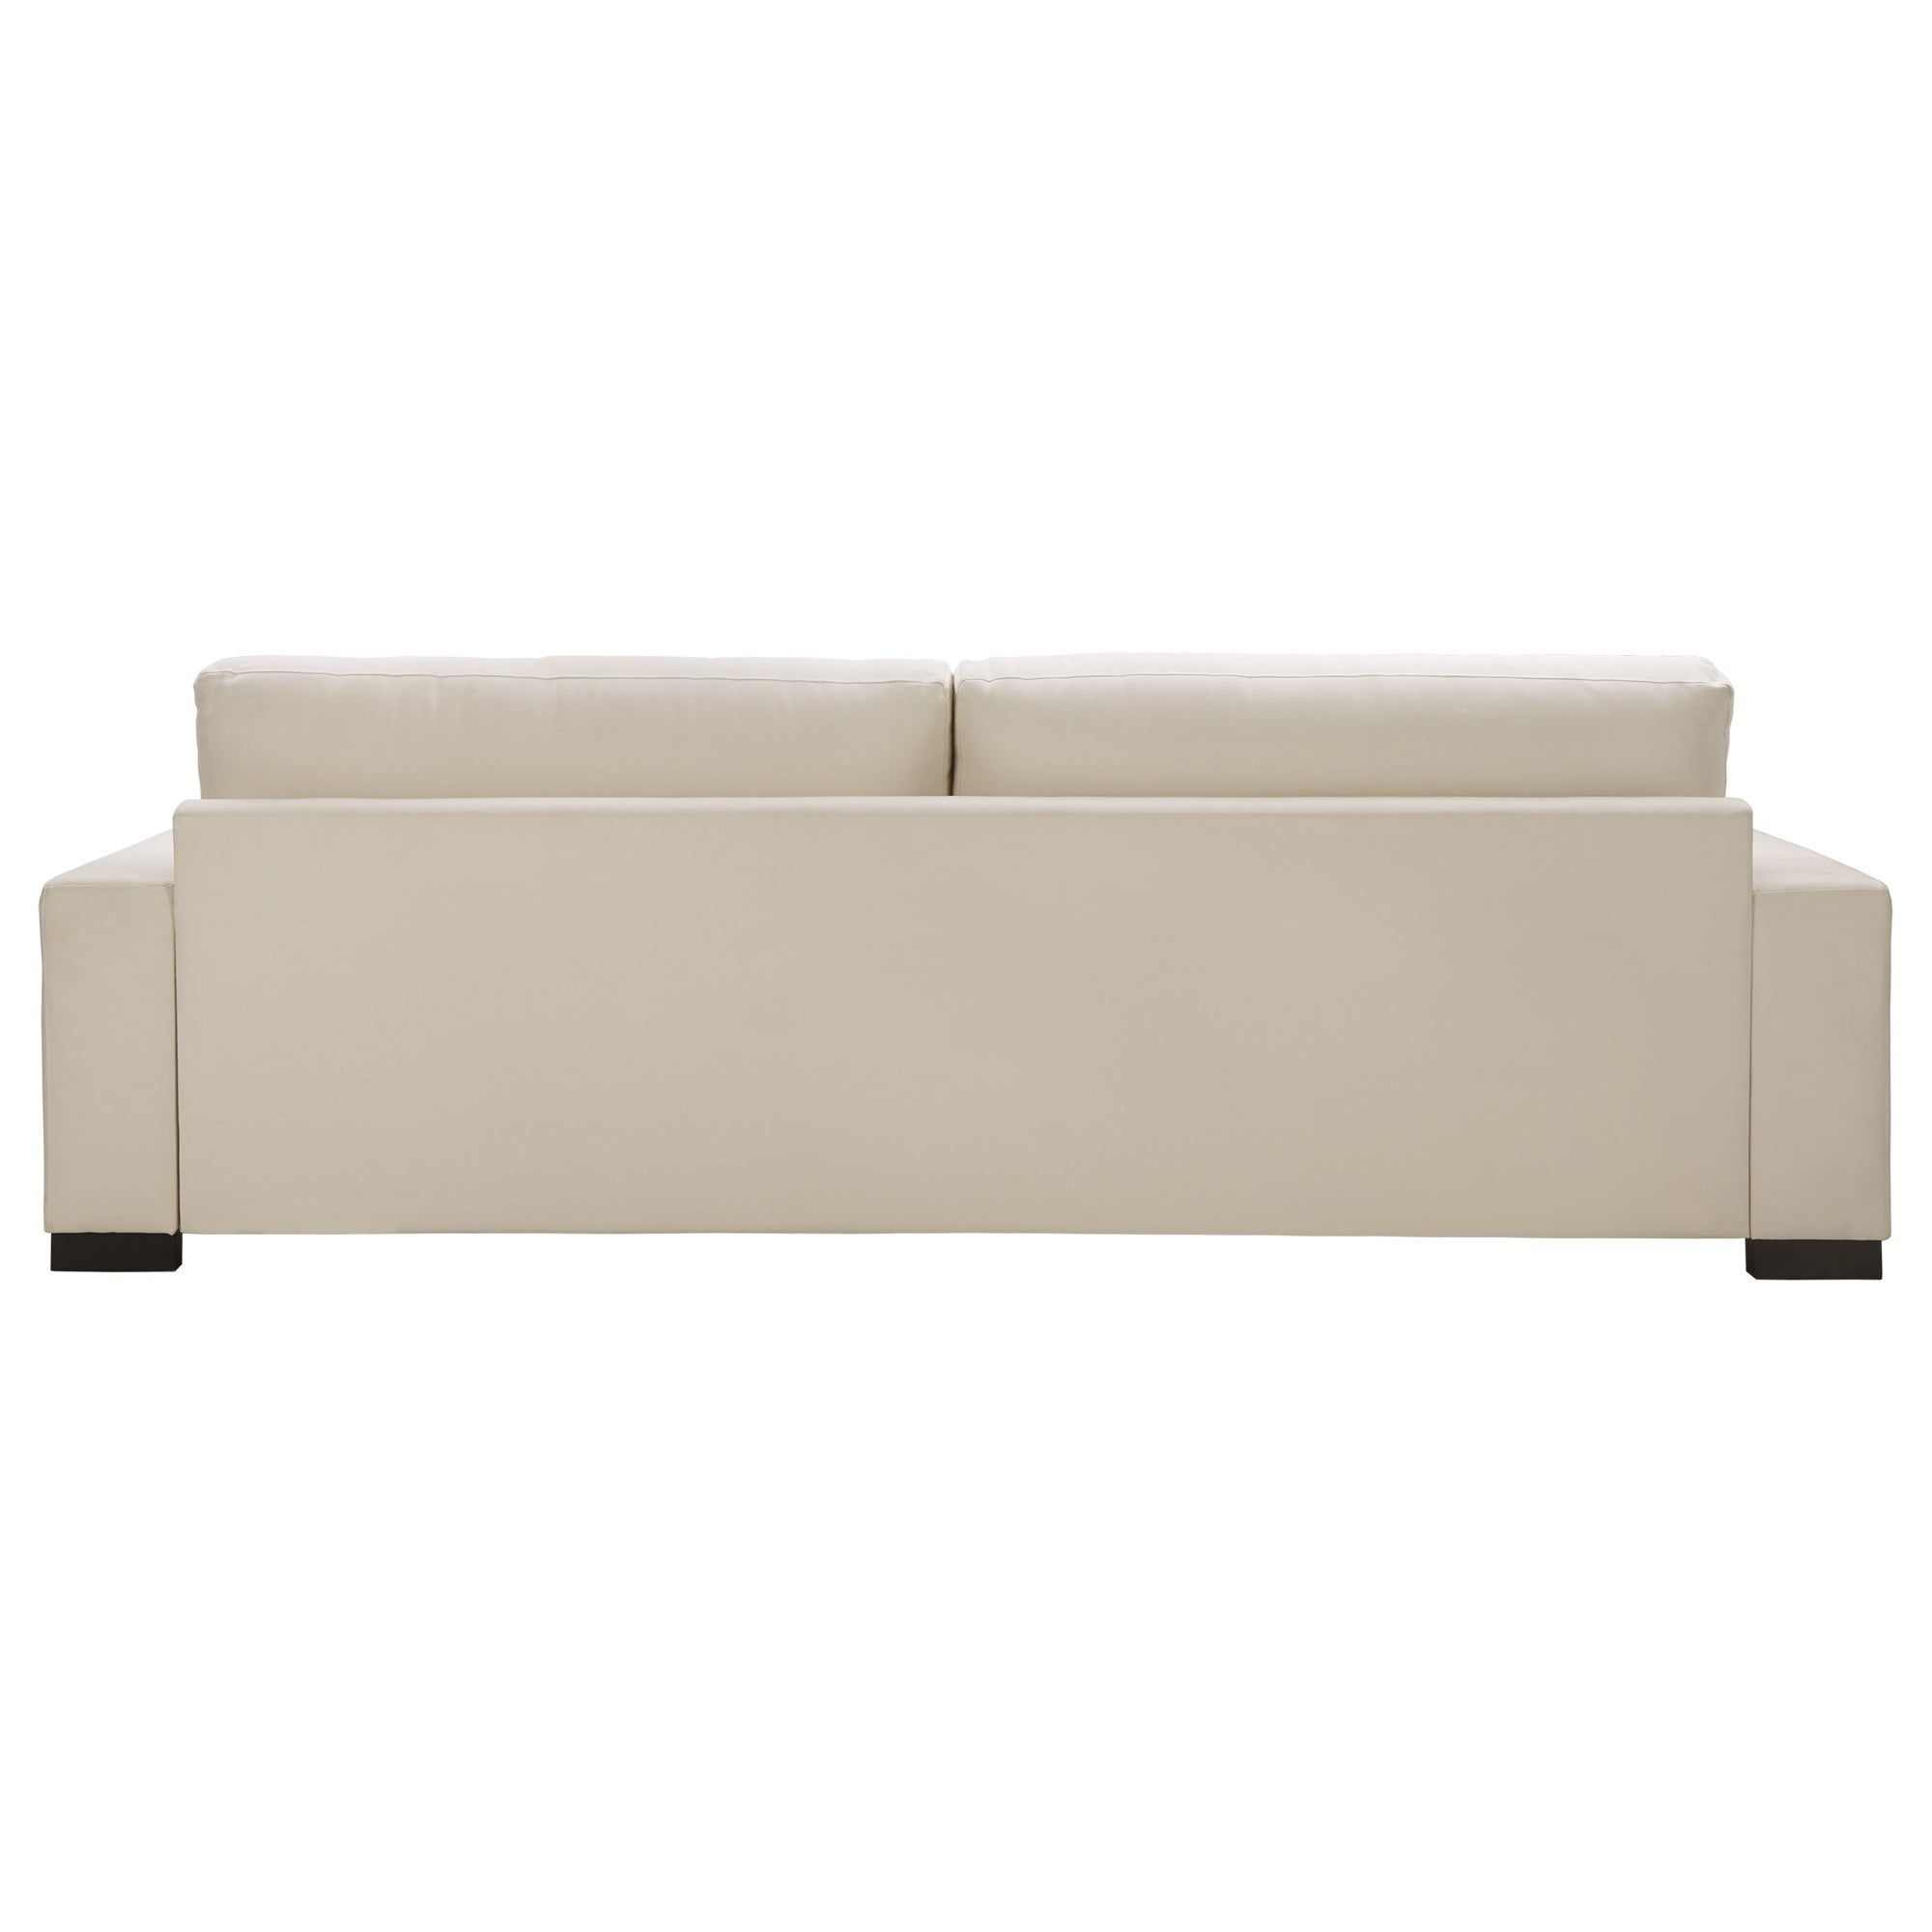 nomad futon and the bed gray store headboard long extra platform blanket unfinished side without trundle product futons